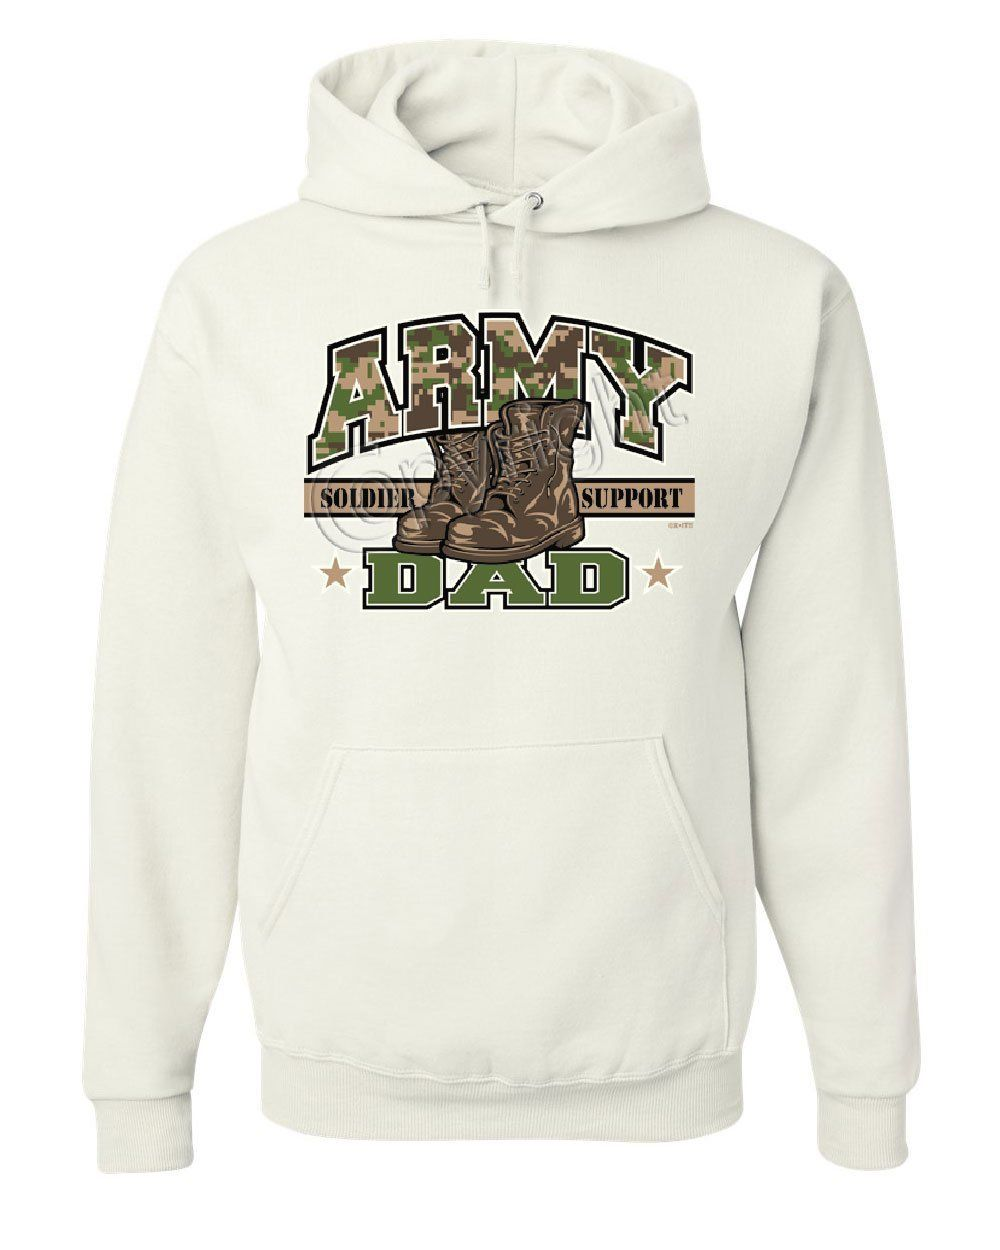 promo code e93e7 37a4f Army Dad Hoodie For Dad Soldier Support Our Troops Patriotic ...